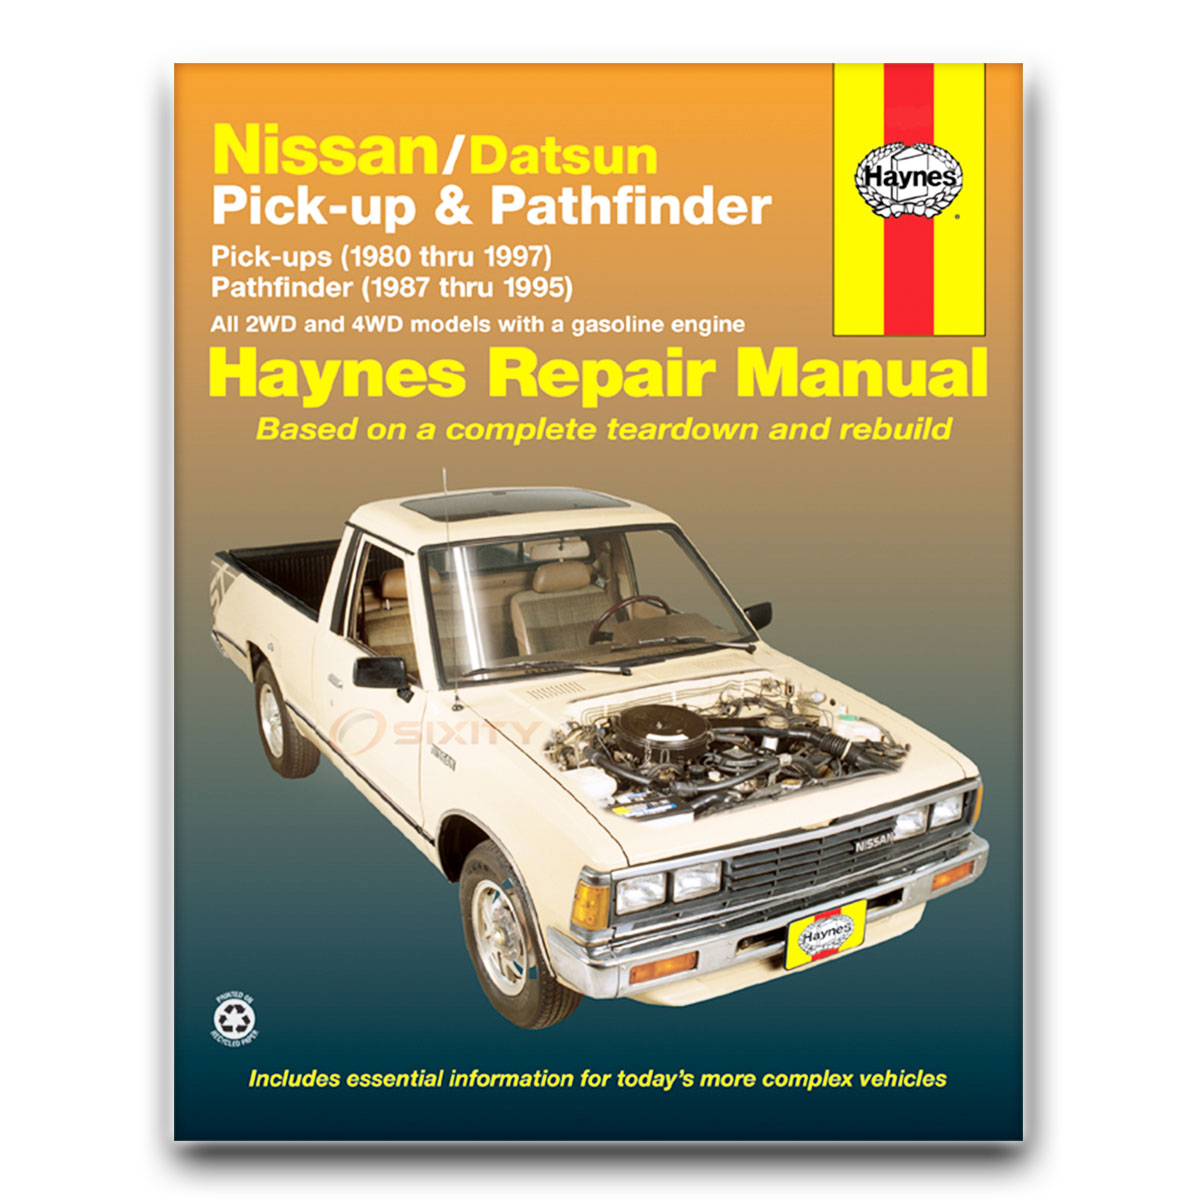 nissan 720 haynes repair manual base sport truck deluxe shop service rh ebay com 1985 Ford Ranger 1988 Ford F-150